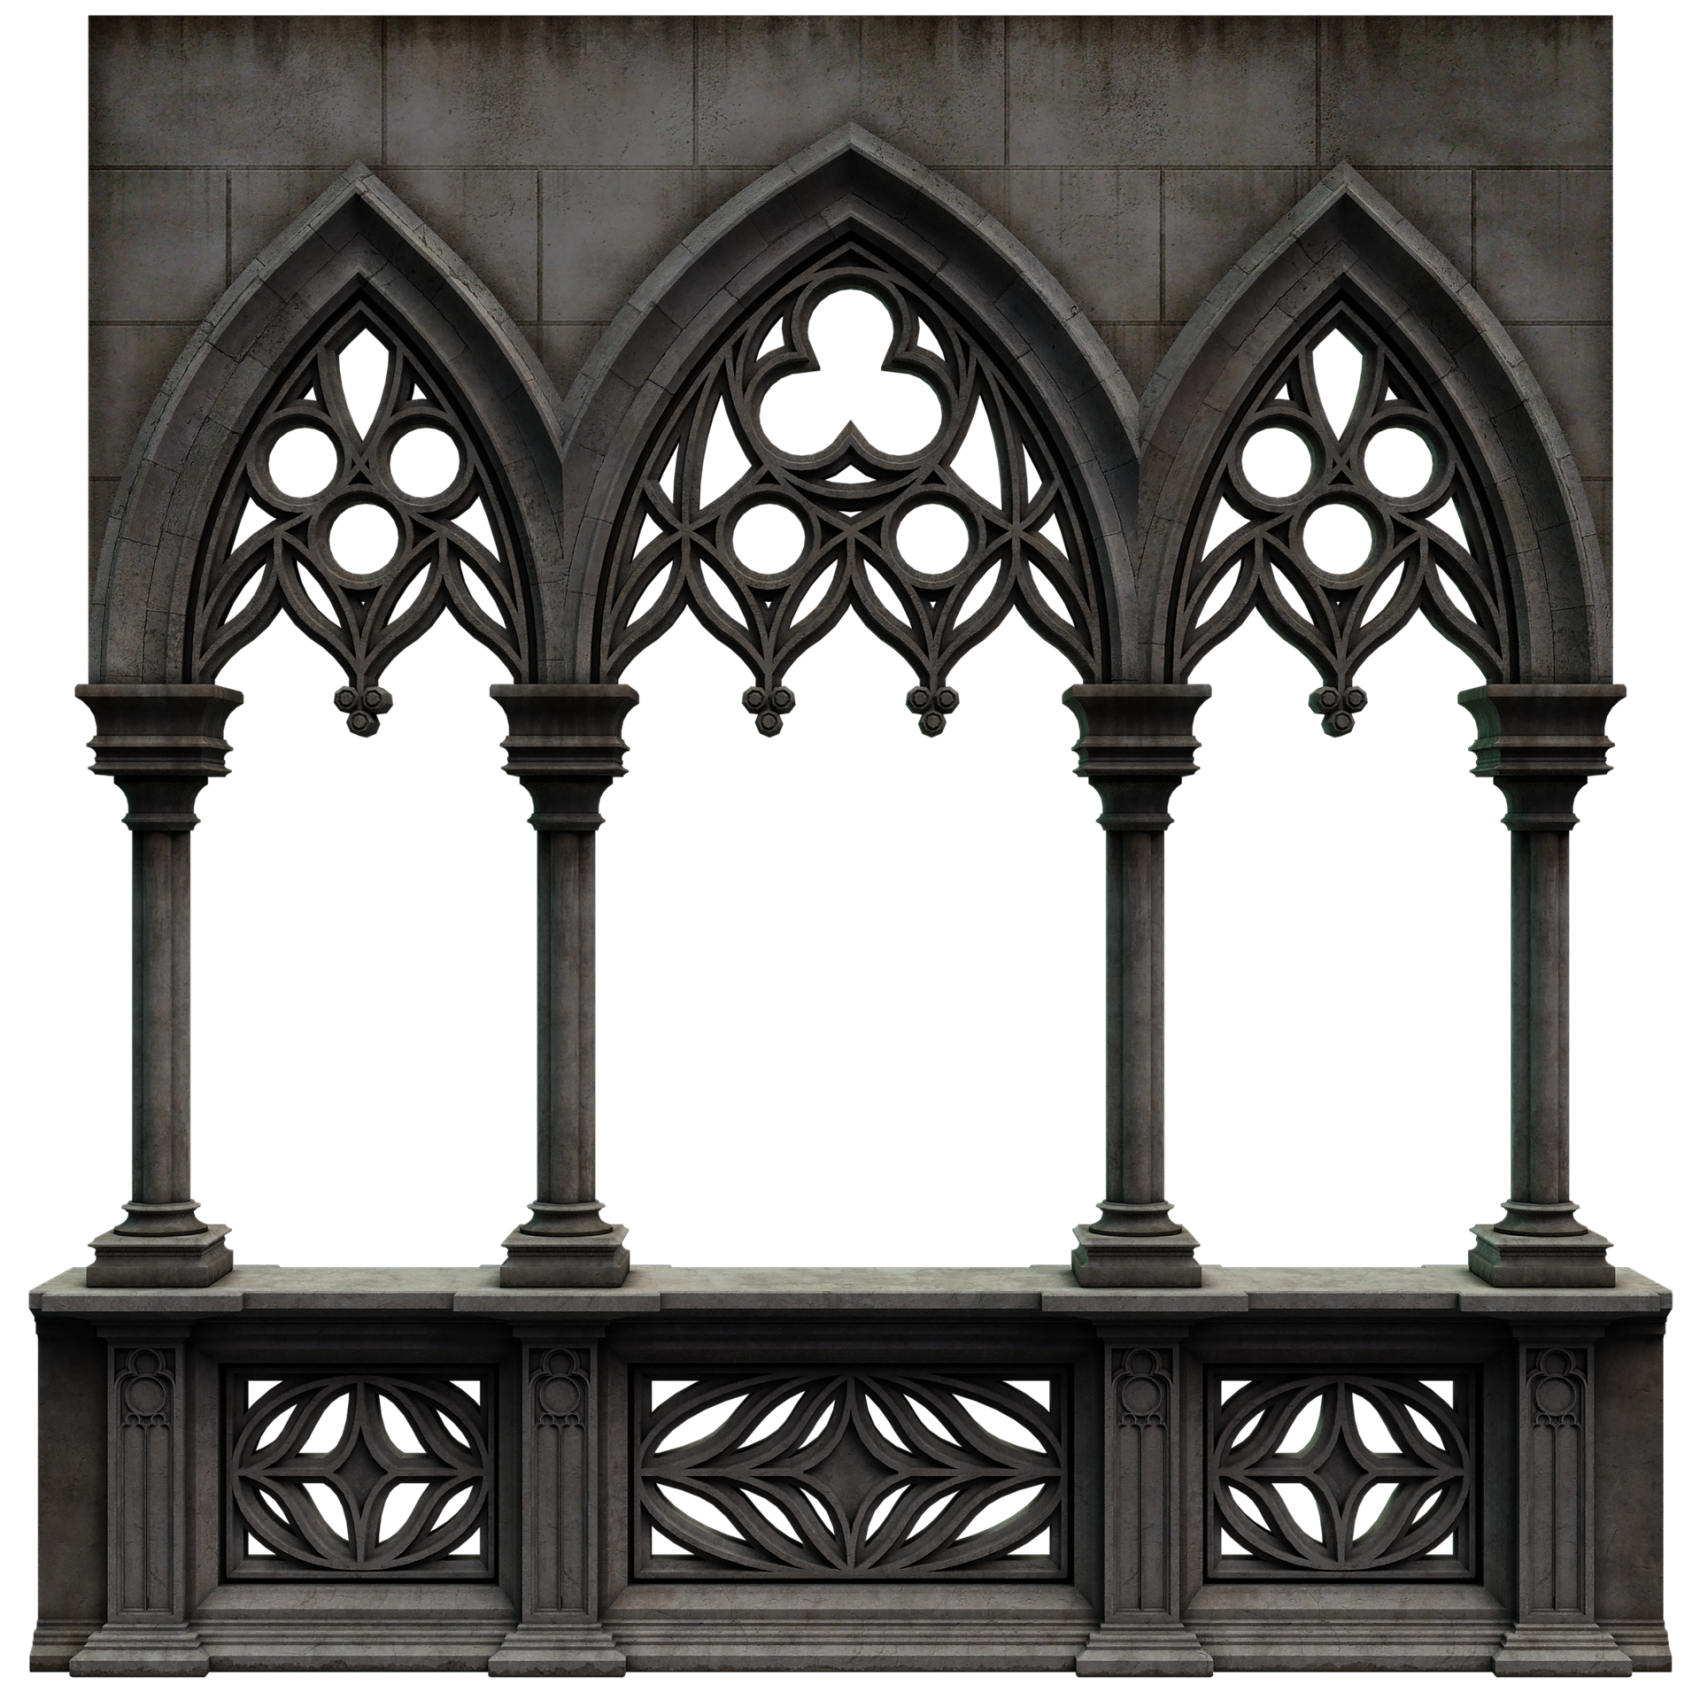 3D model of a window wall